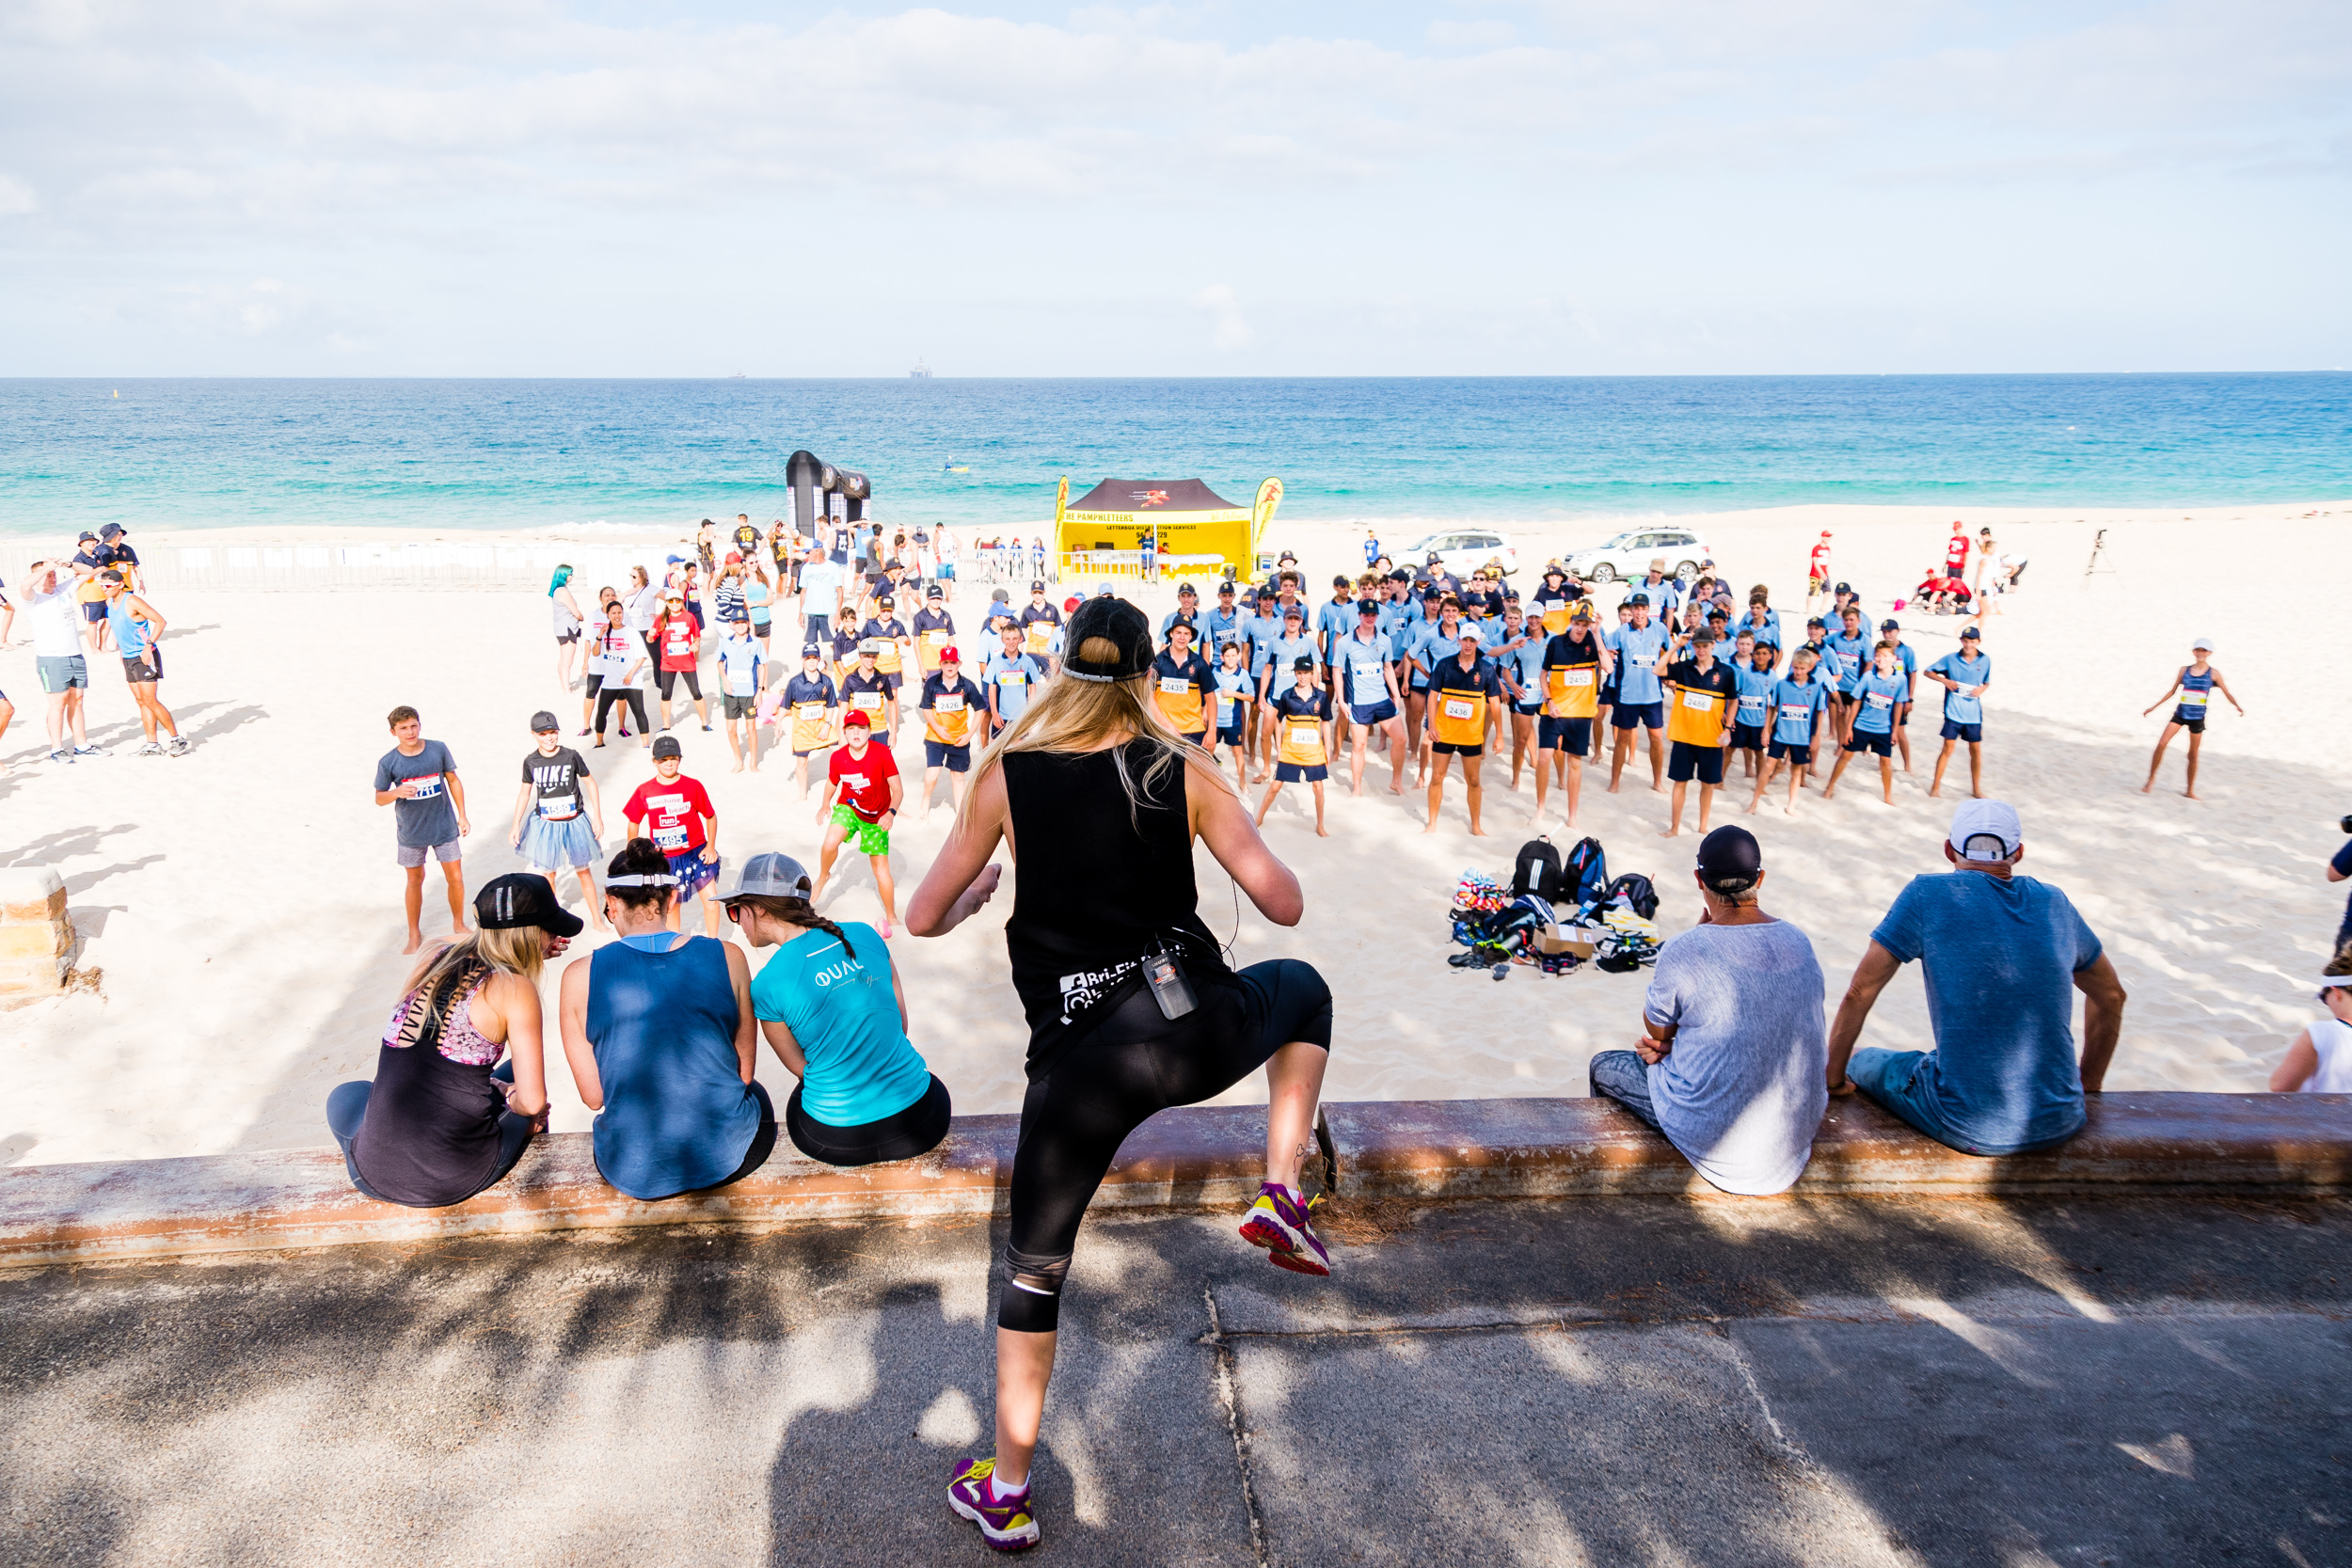 Spyrides_Kyle_Sunshine_Beach_Run_18.2.2018_DSC9237.jpg